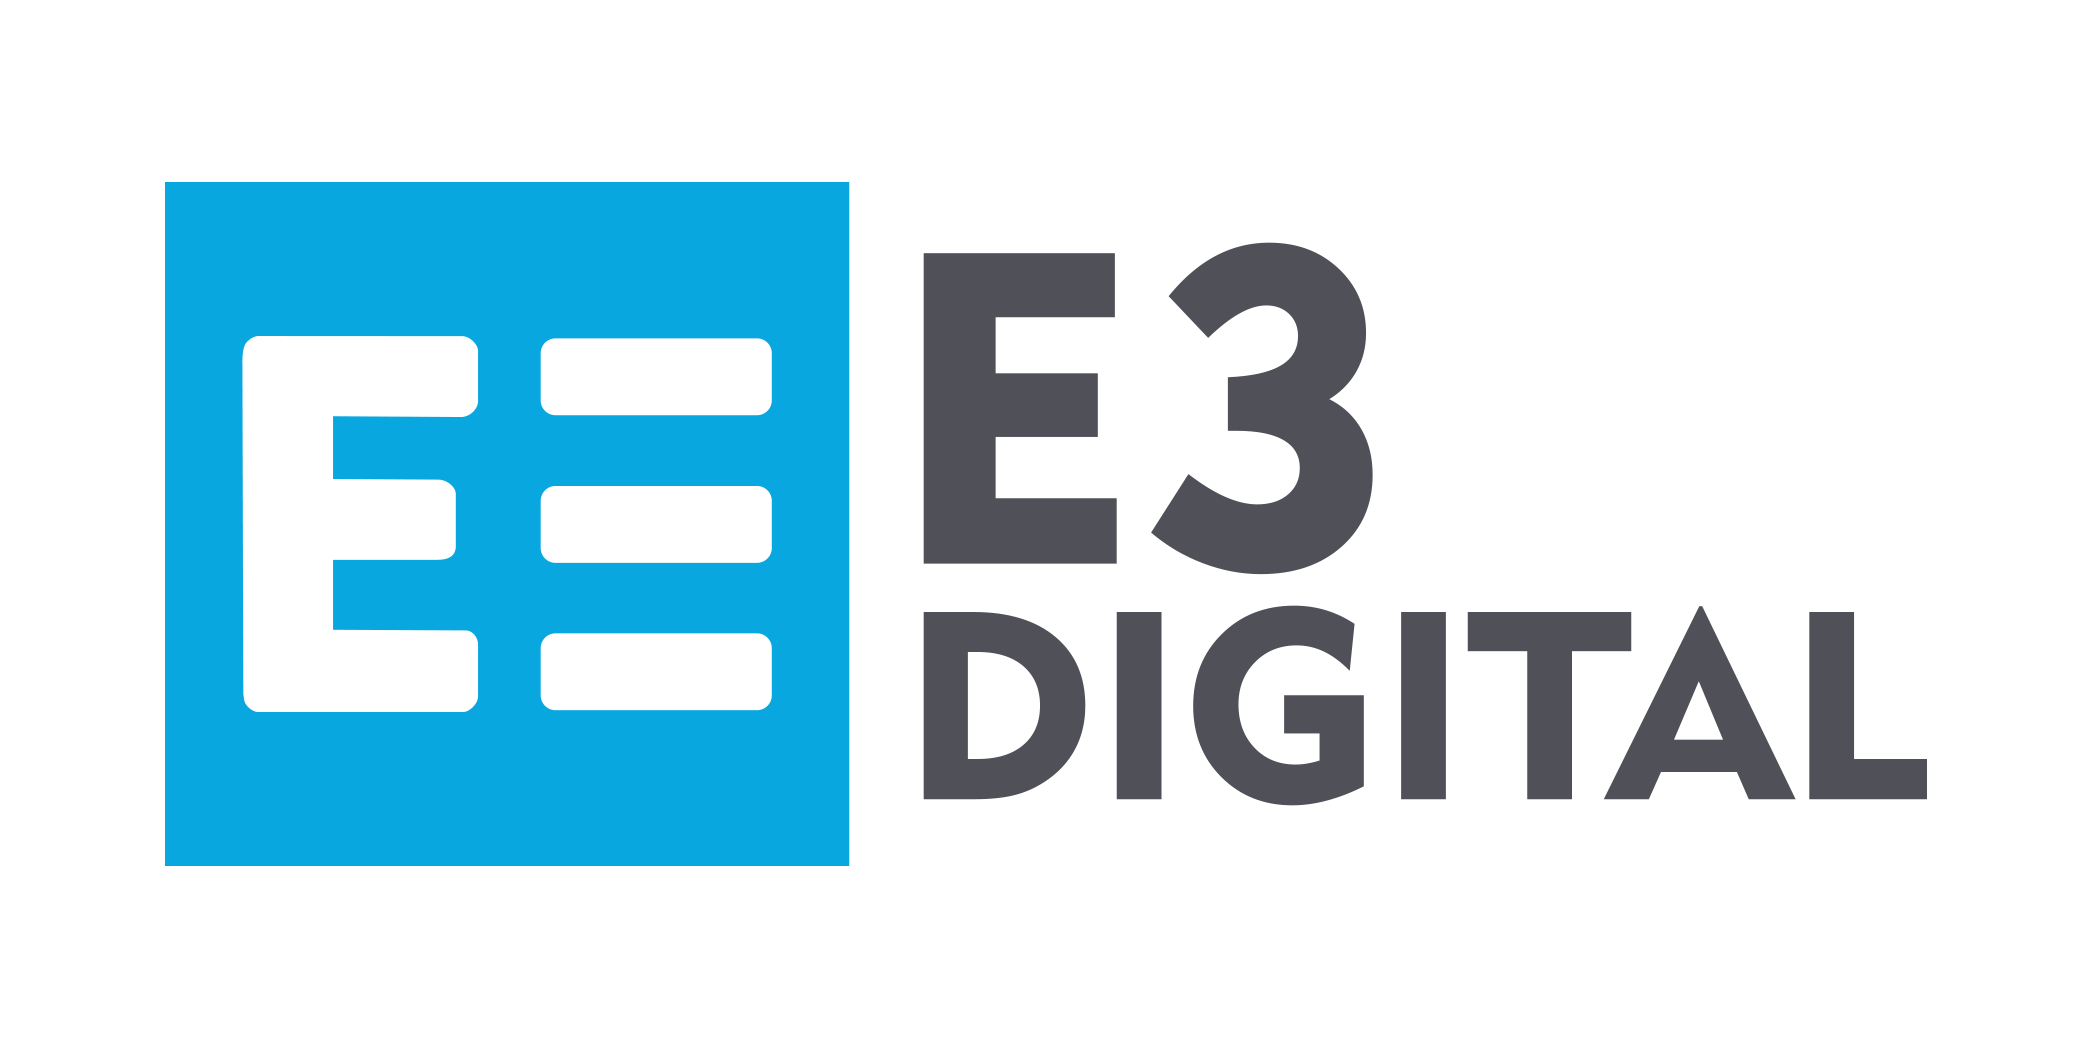 logo E3 Digital